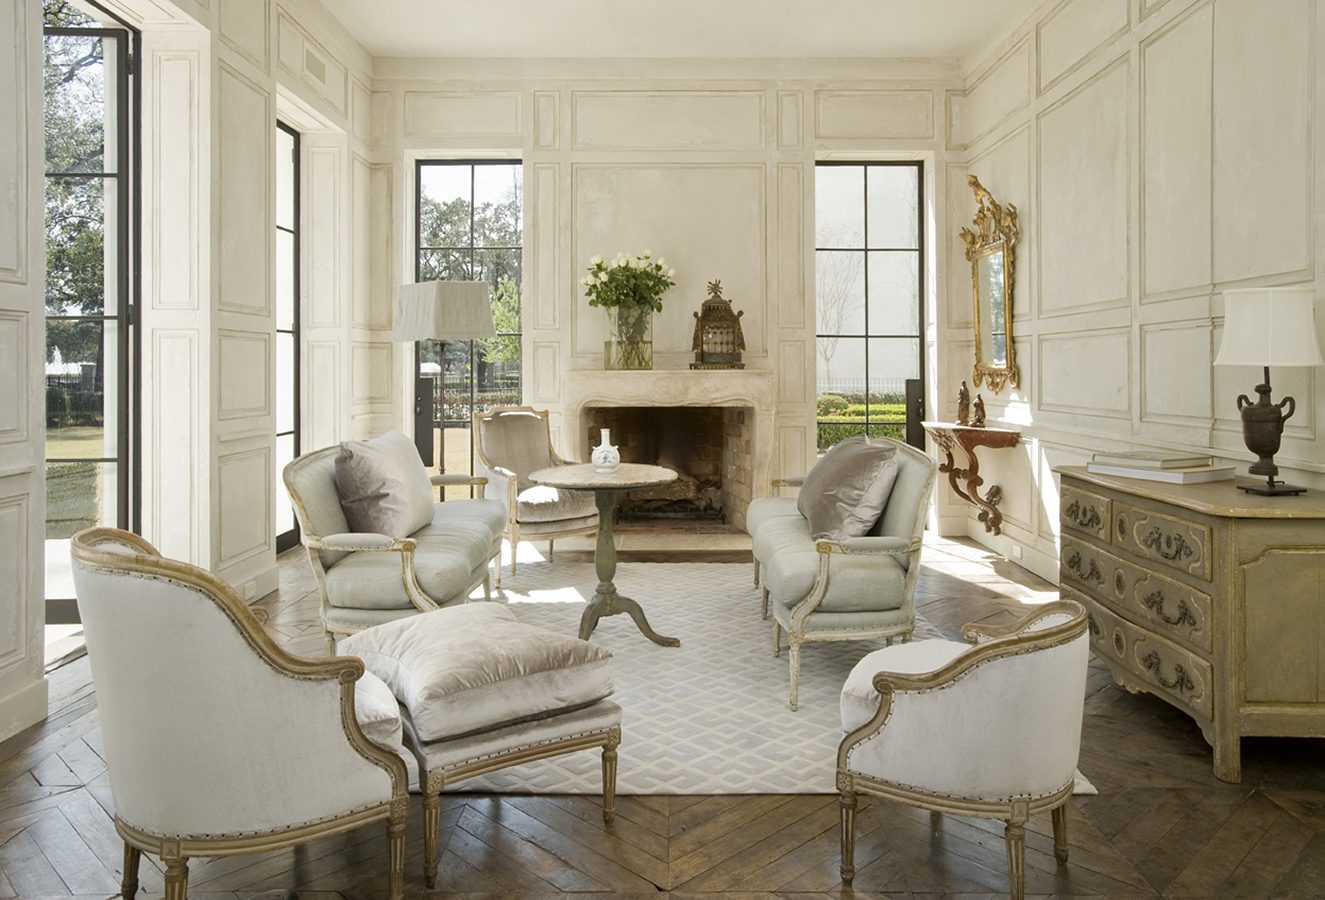 Elegant Houston home interiors in case you admire Luxurious European Style Interior Design Inspiration! #whitedecor #sophisticated #interiordesign #frenchhome